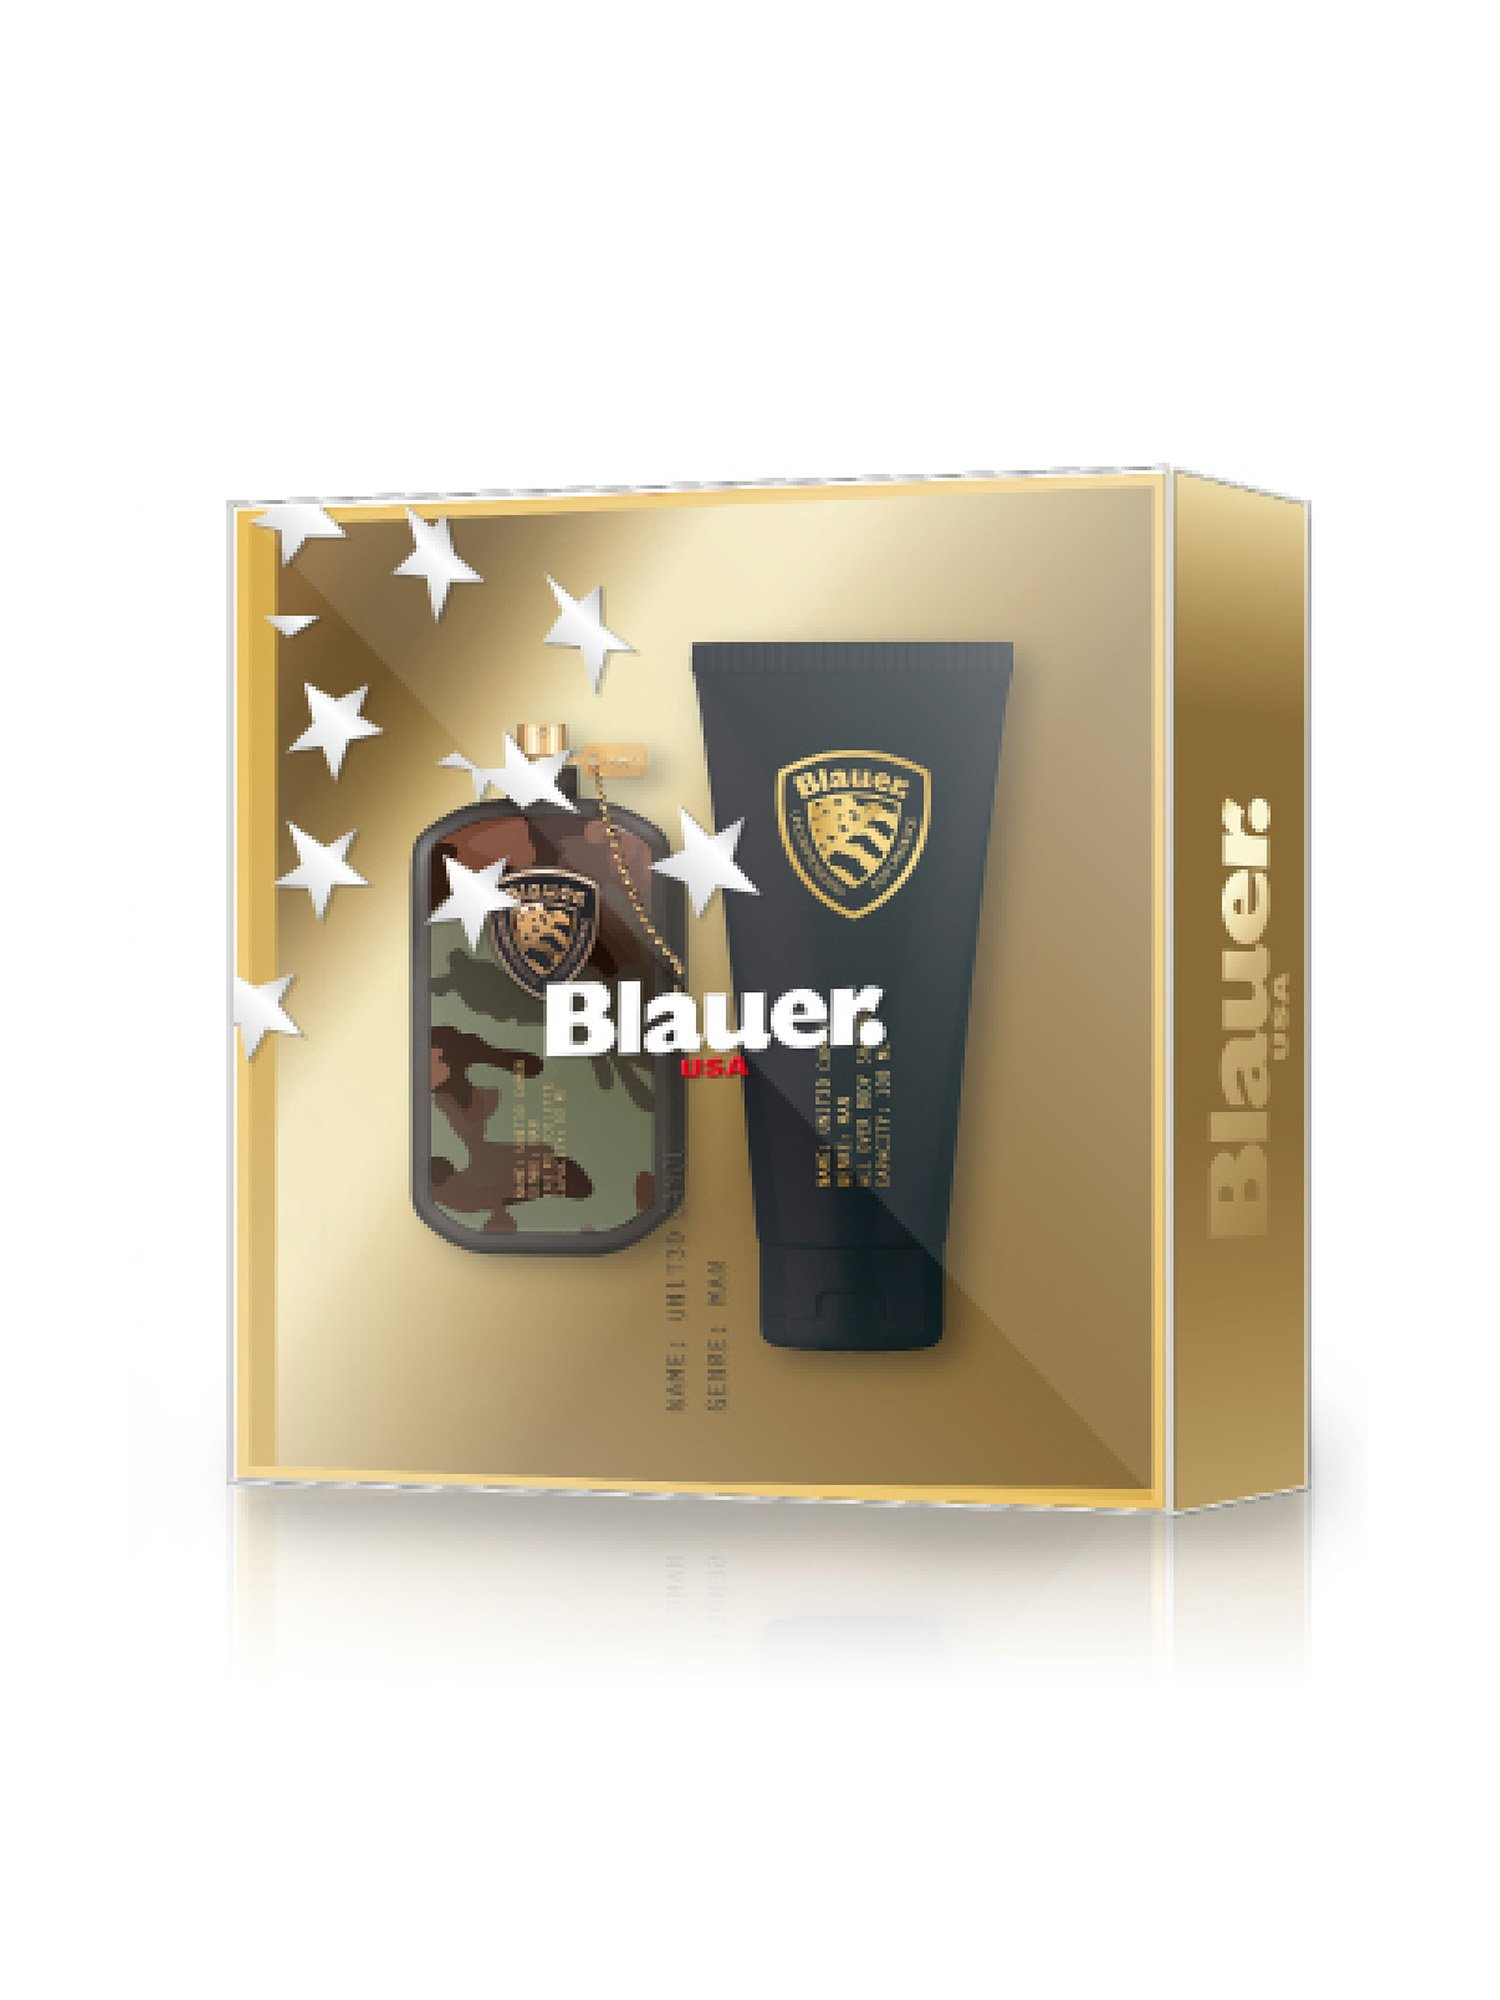 BLAUER CAMOU COFFRET FOR MAN - Blauer